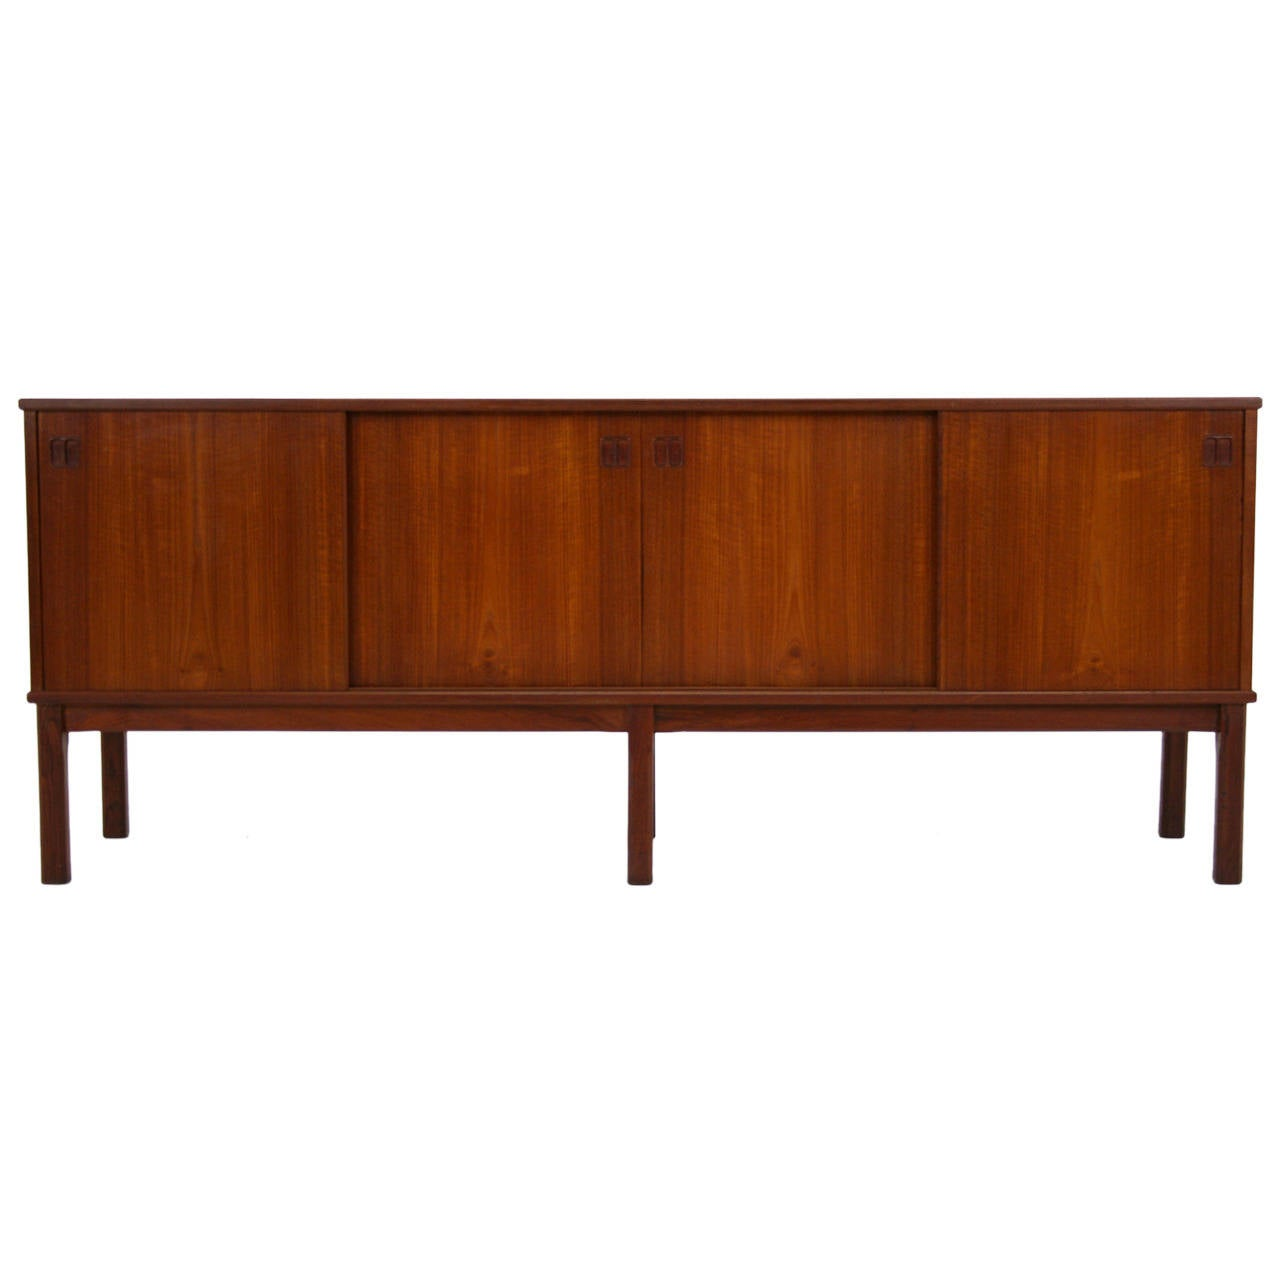 Teak danish modern sideboard cabinet credenza console mid for Credenza furniture